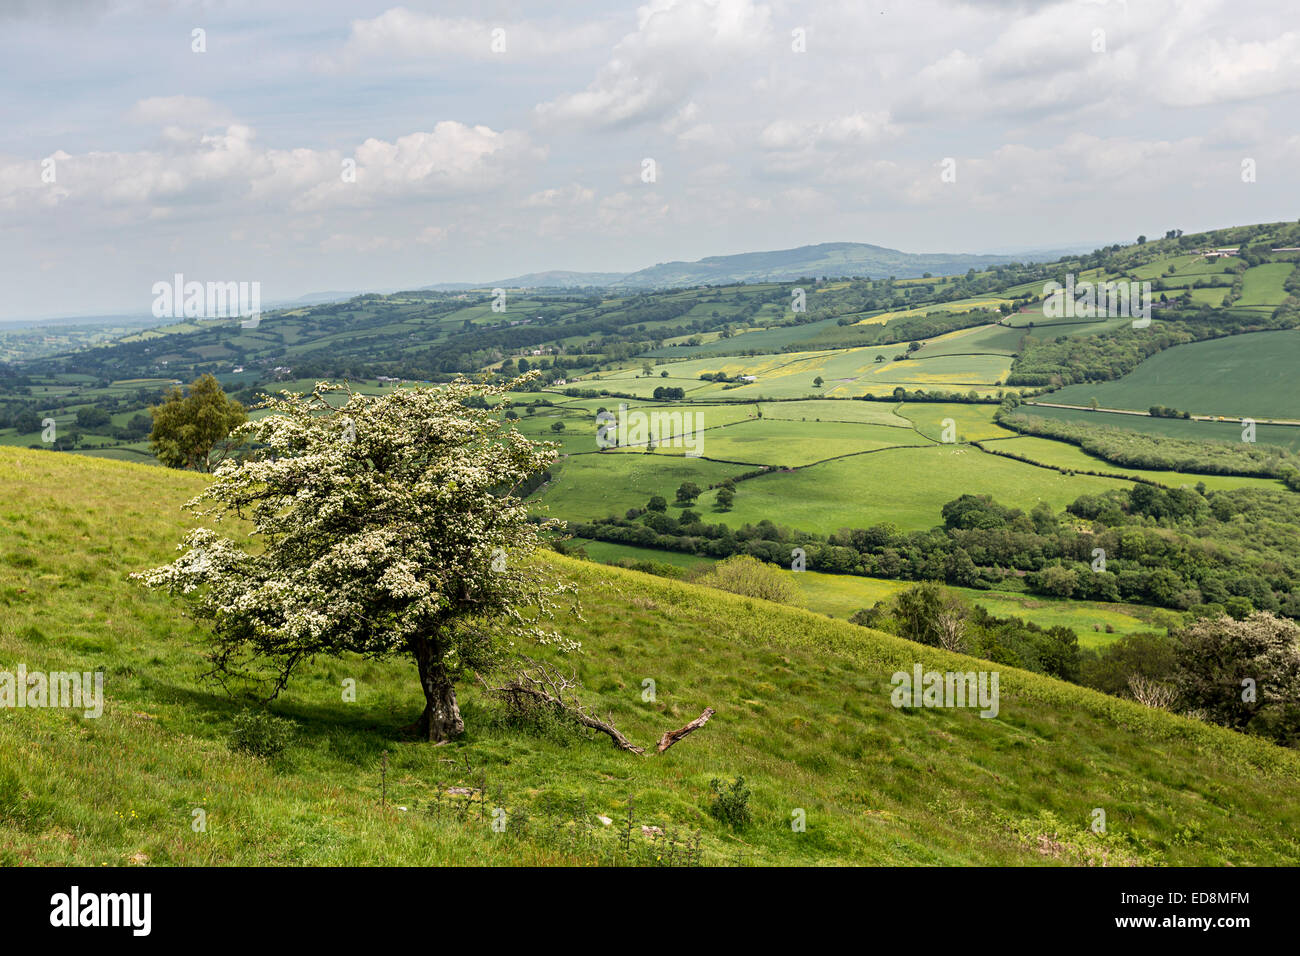 Hawthorn tree in flower with countryside fields, Bryn Arw near Abergavenny, Wales, UK - Stock Image